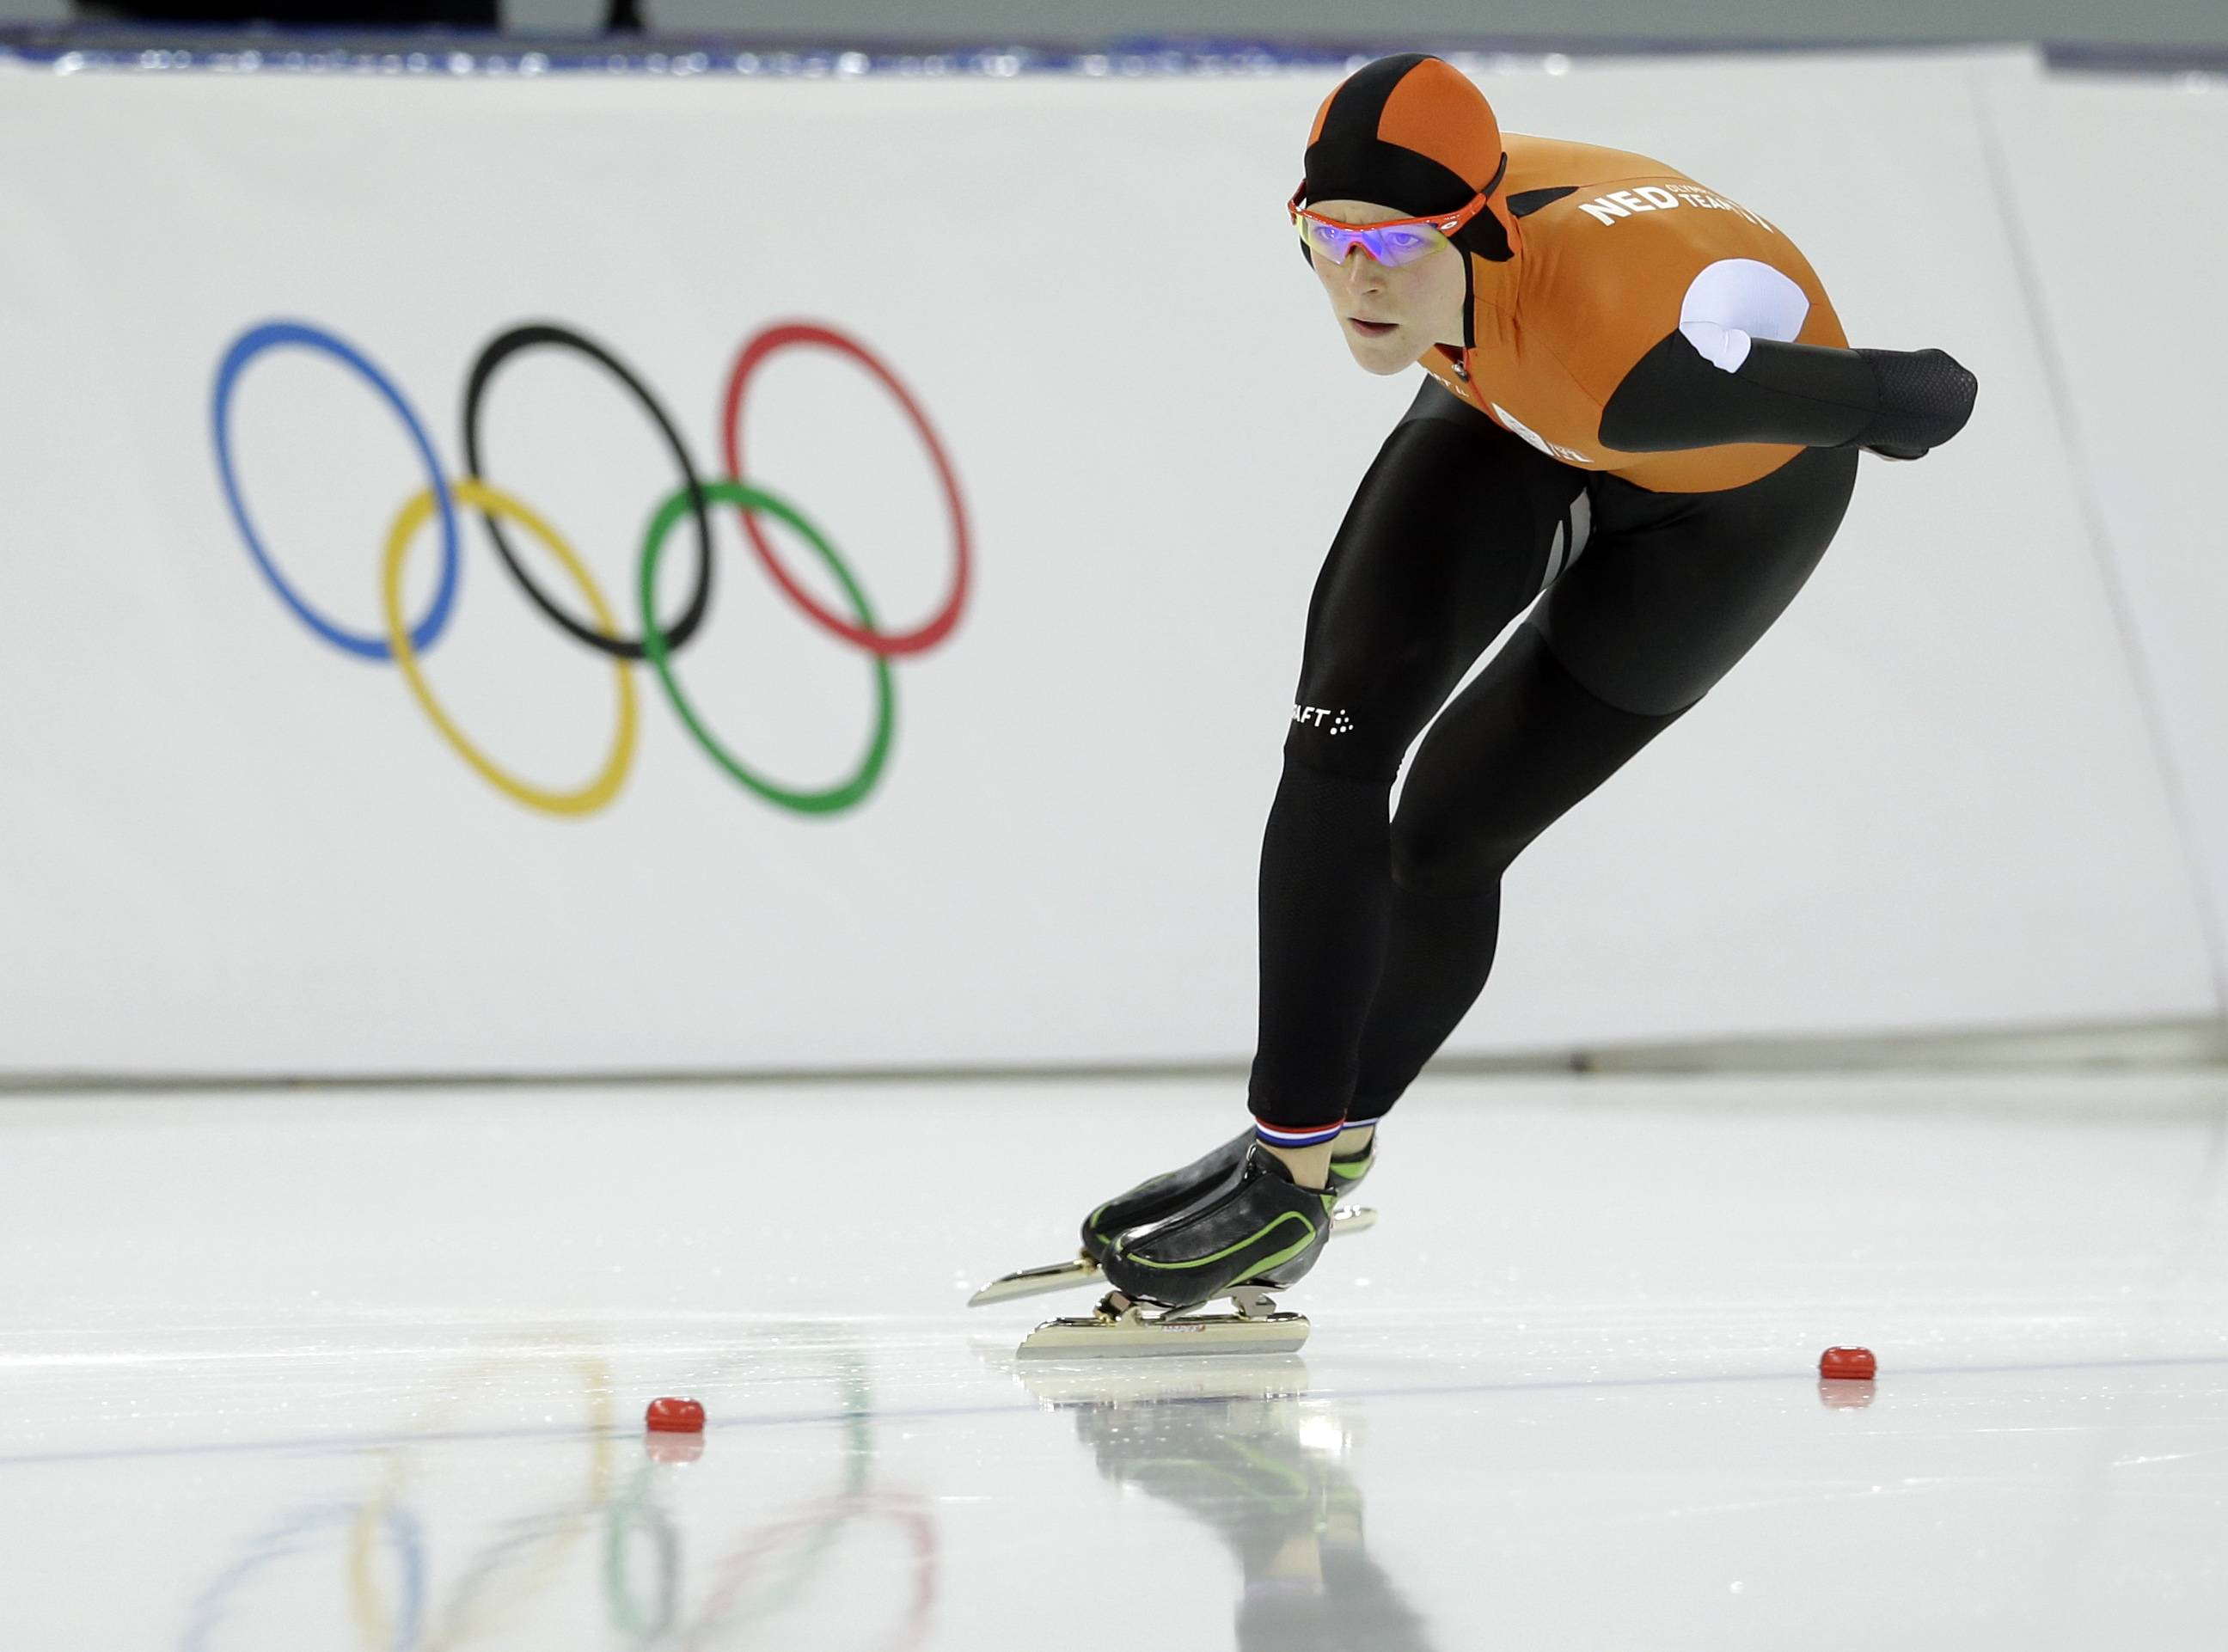 Gold medalist Jorien ter Mors of the Netherlands competes in the women's 1,500-meter race at the Adler Arena Skating Center during the 2014 Winter Olympics in Sochi, Russia, Sunday, Feb. 16, 2014.